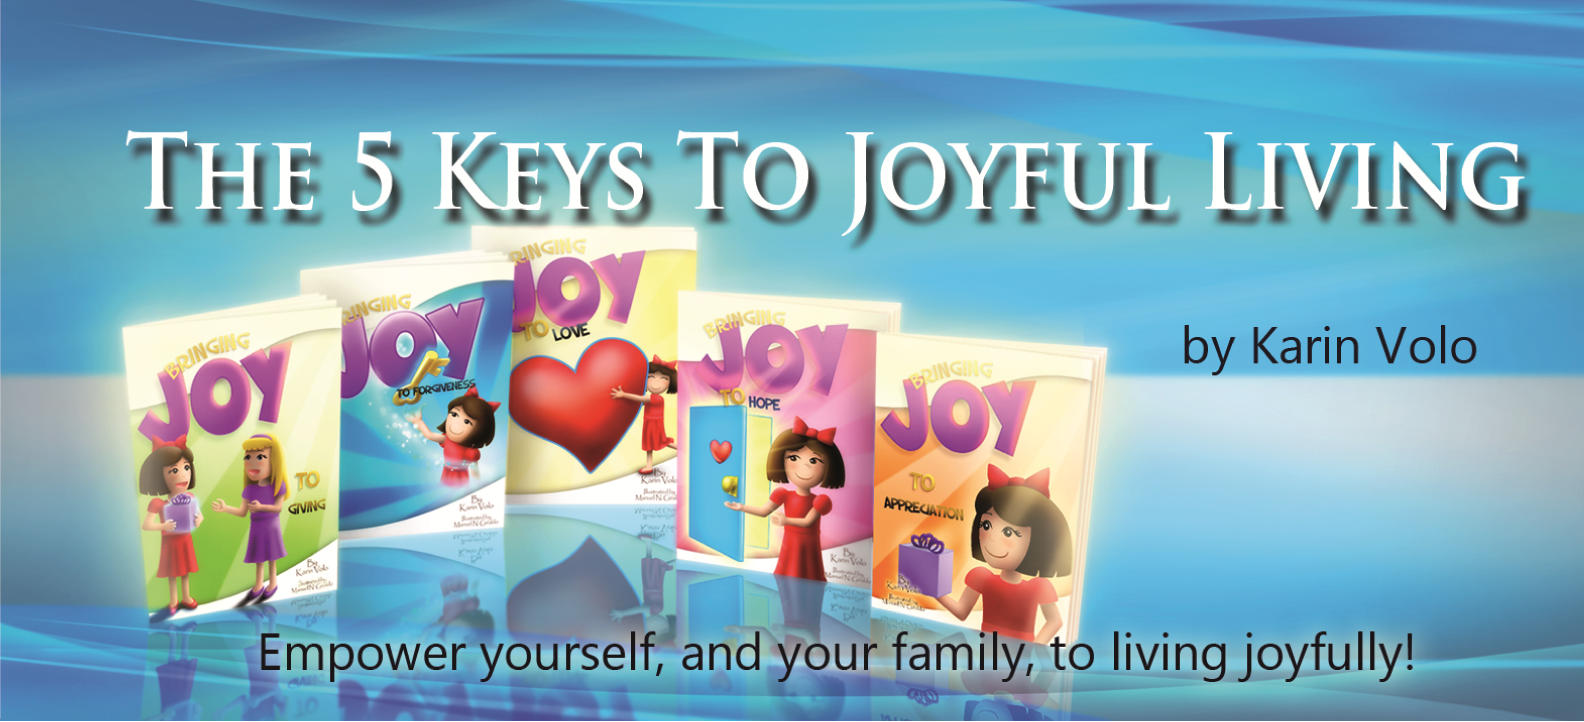 5 Keys to Joyful Living